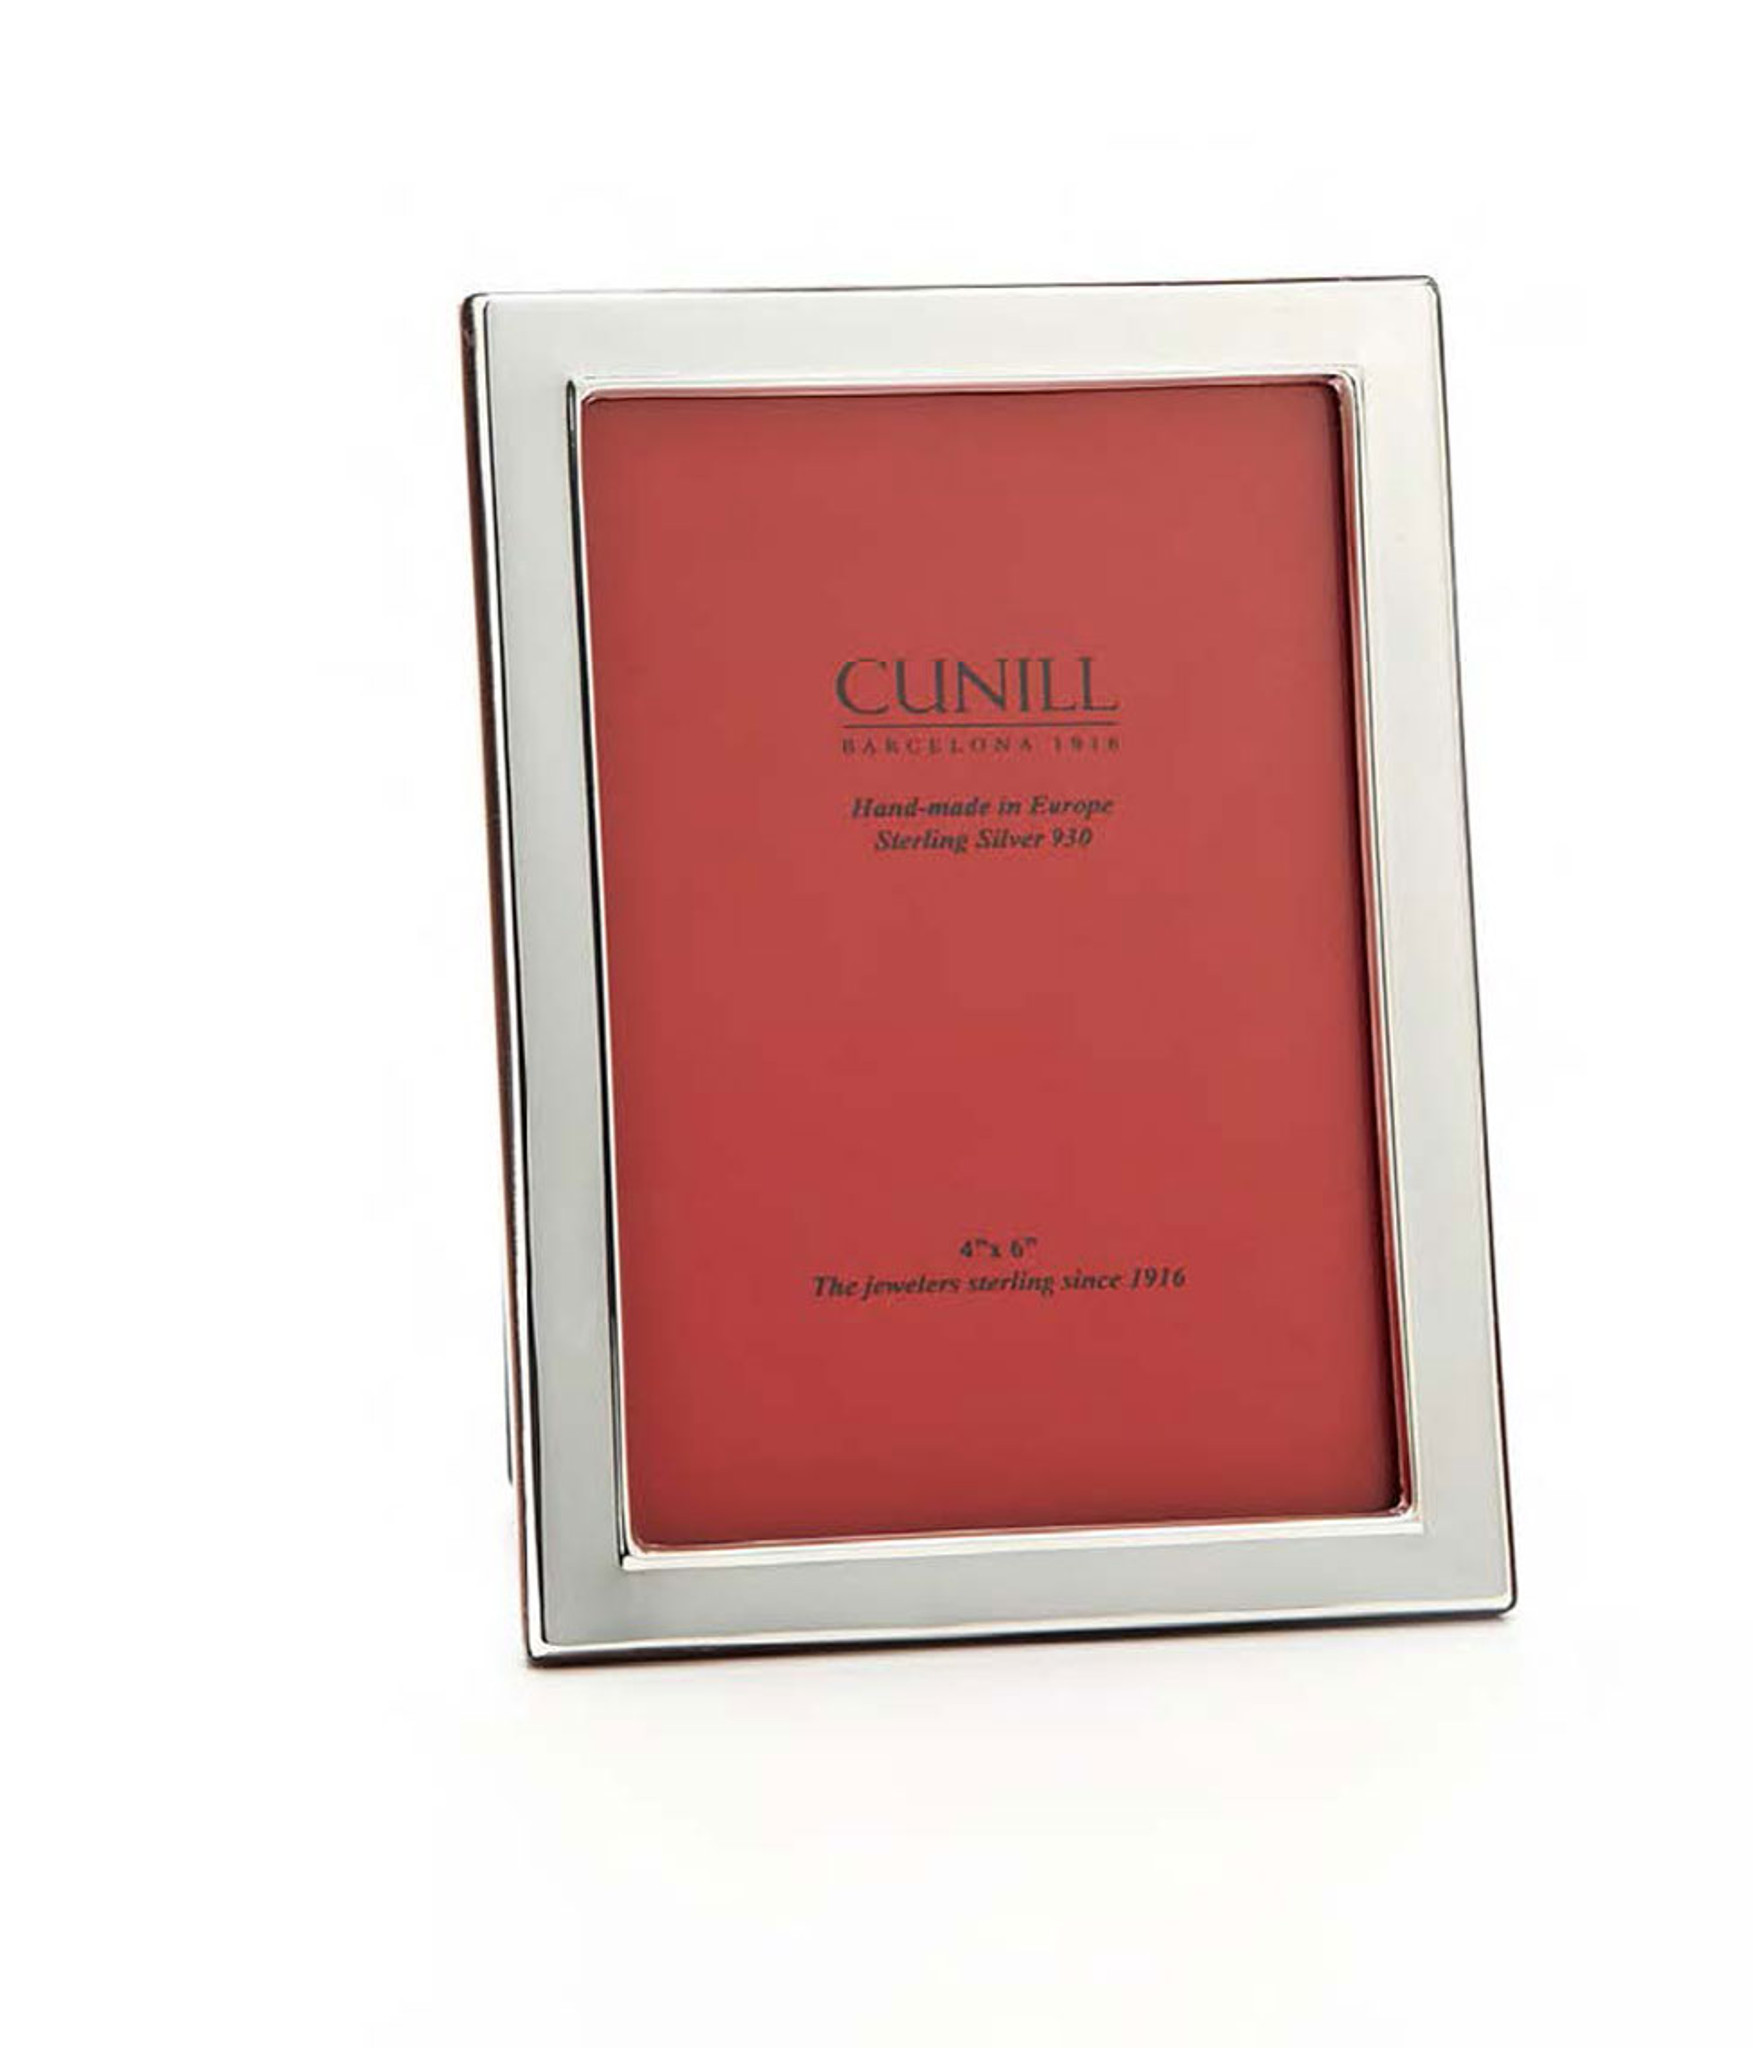 Cunill Barcelona Plain 1/2 Inch Border 4 X 6 Inch Picture Frame   Sterling